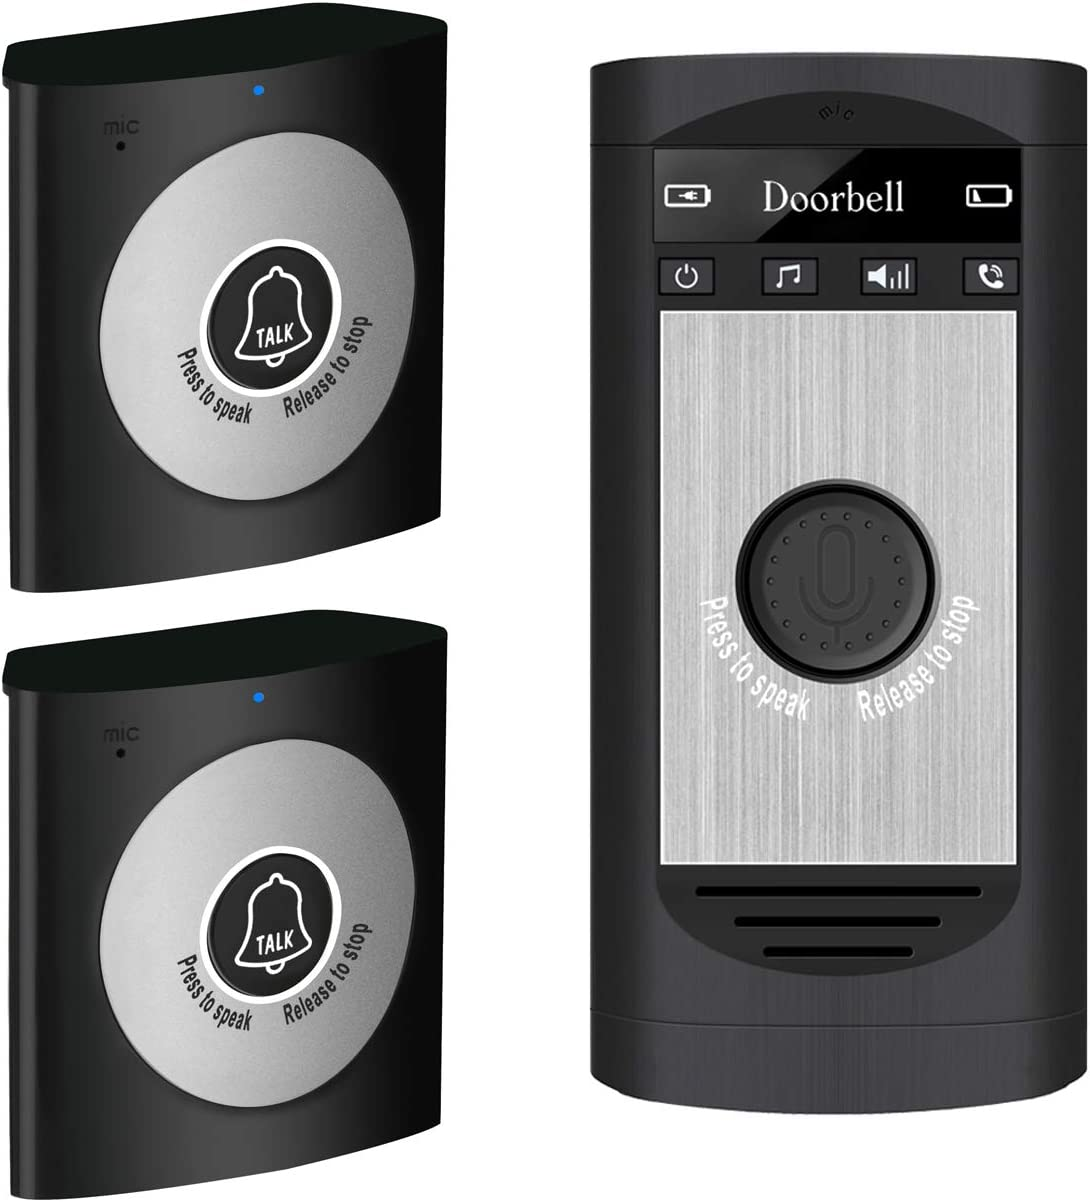 (2020 Updated) Napok Wireless Intercom Doorbell for Home, Wireless Voice Doorbell Support Two Way Voice Intercom for Home and Office, One Transmitter with Two receivers for Elderly Black H7A